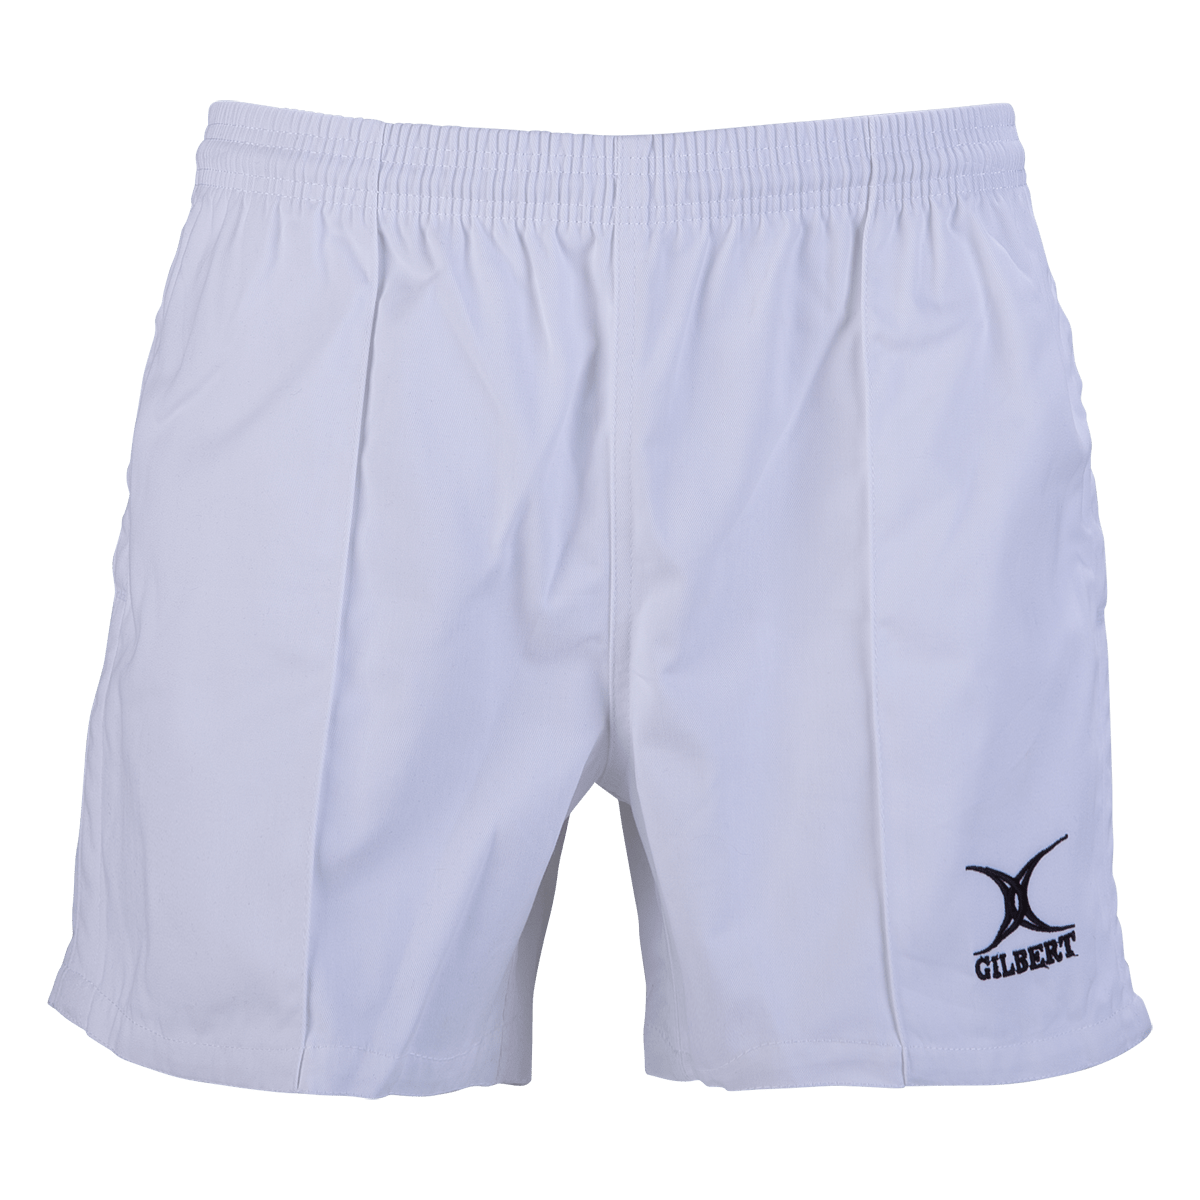 Gilbert White Kiwi Pro Youth Shorts